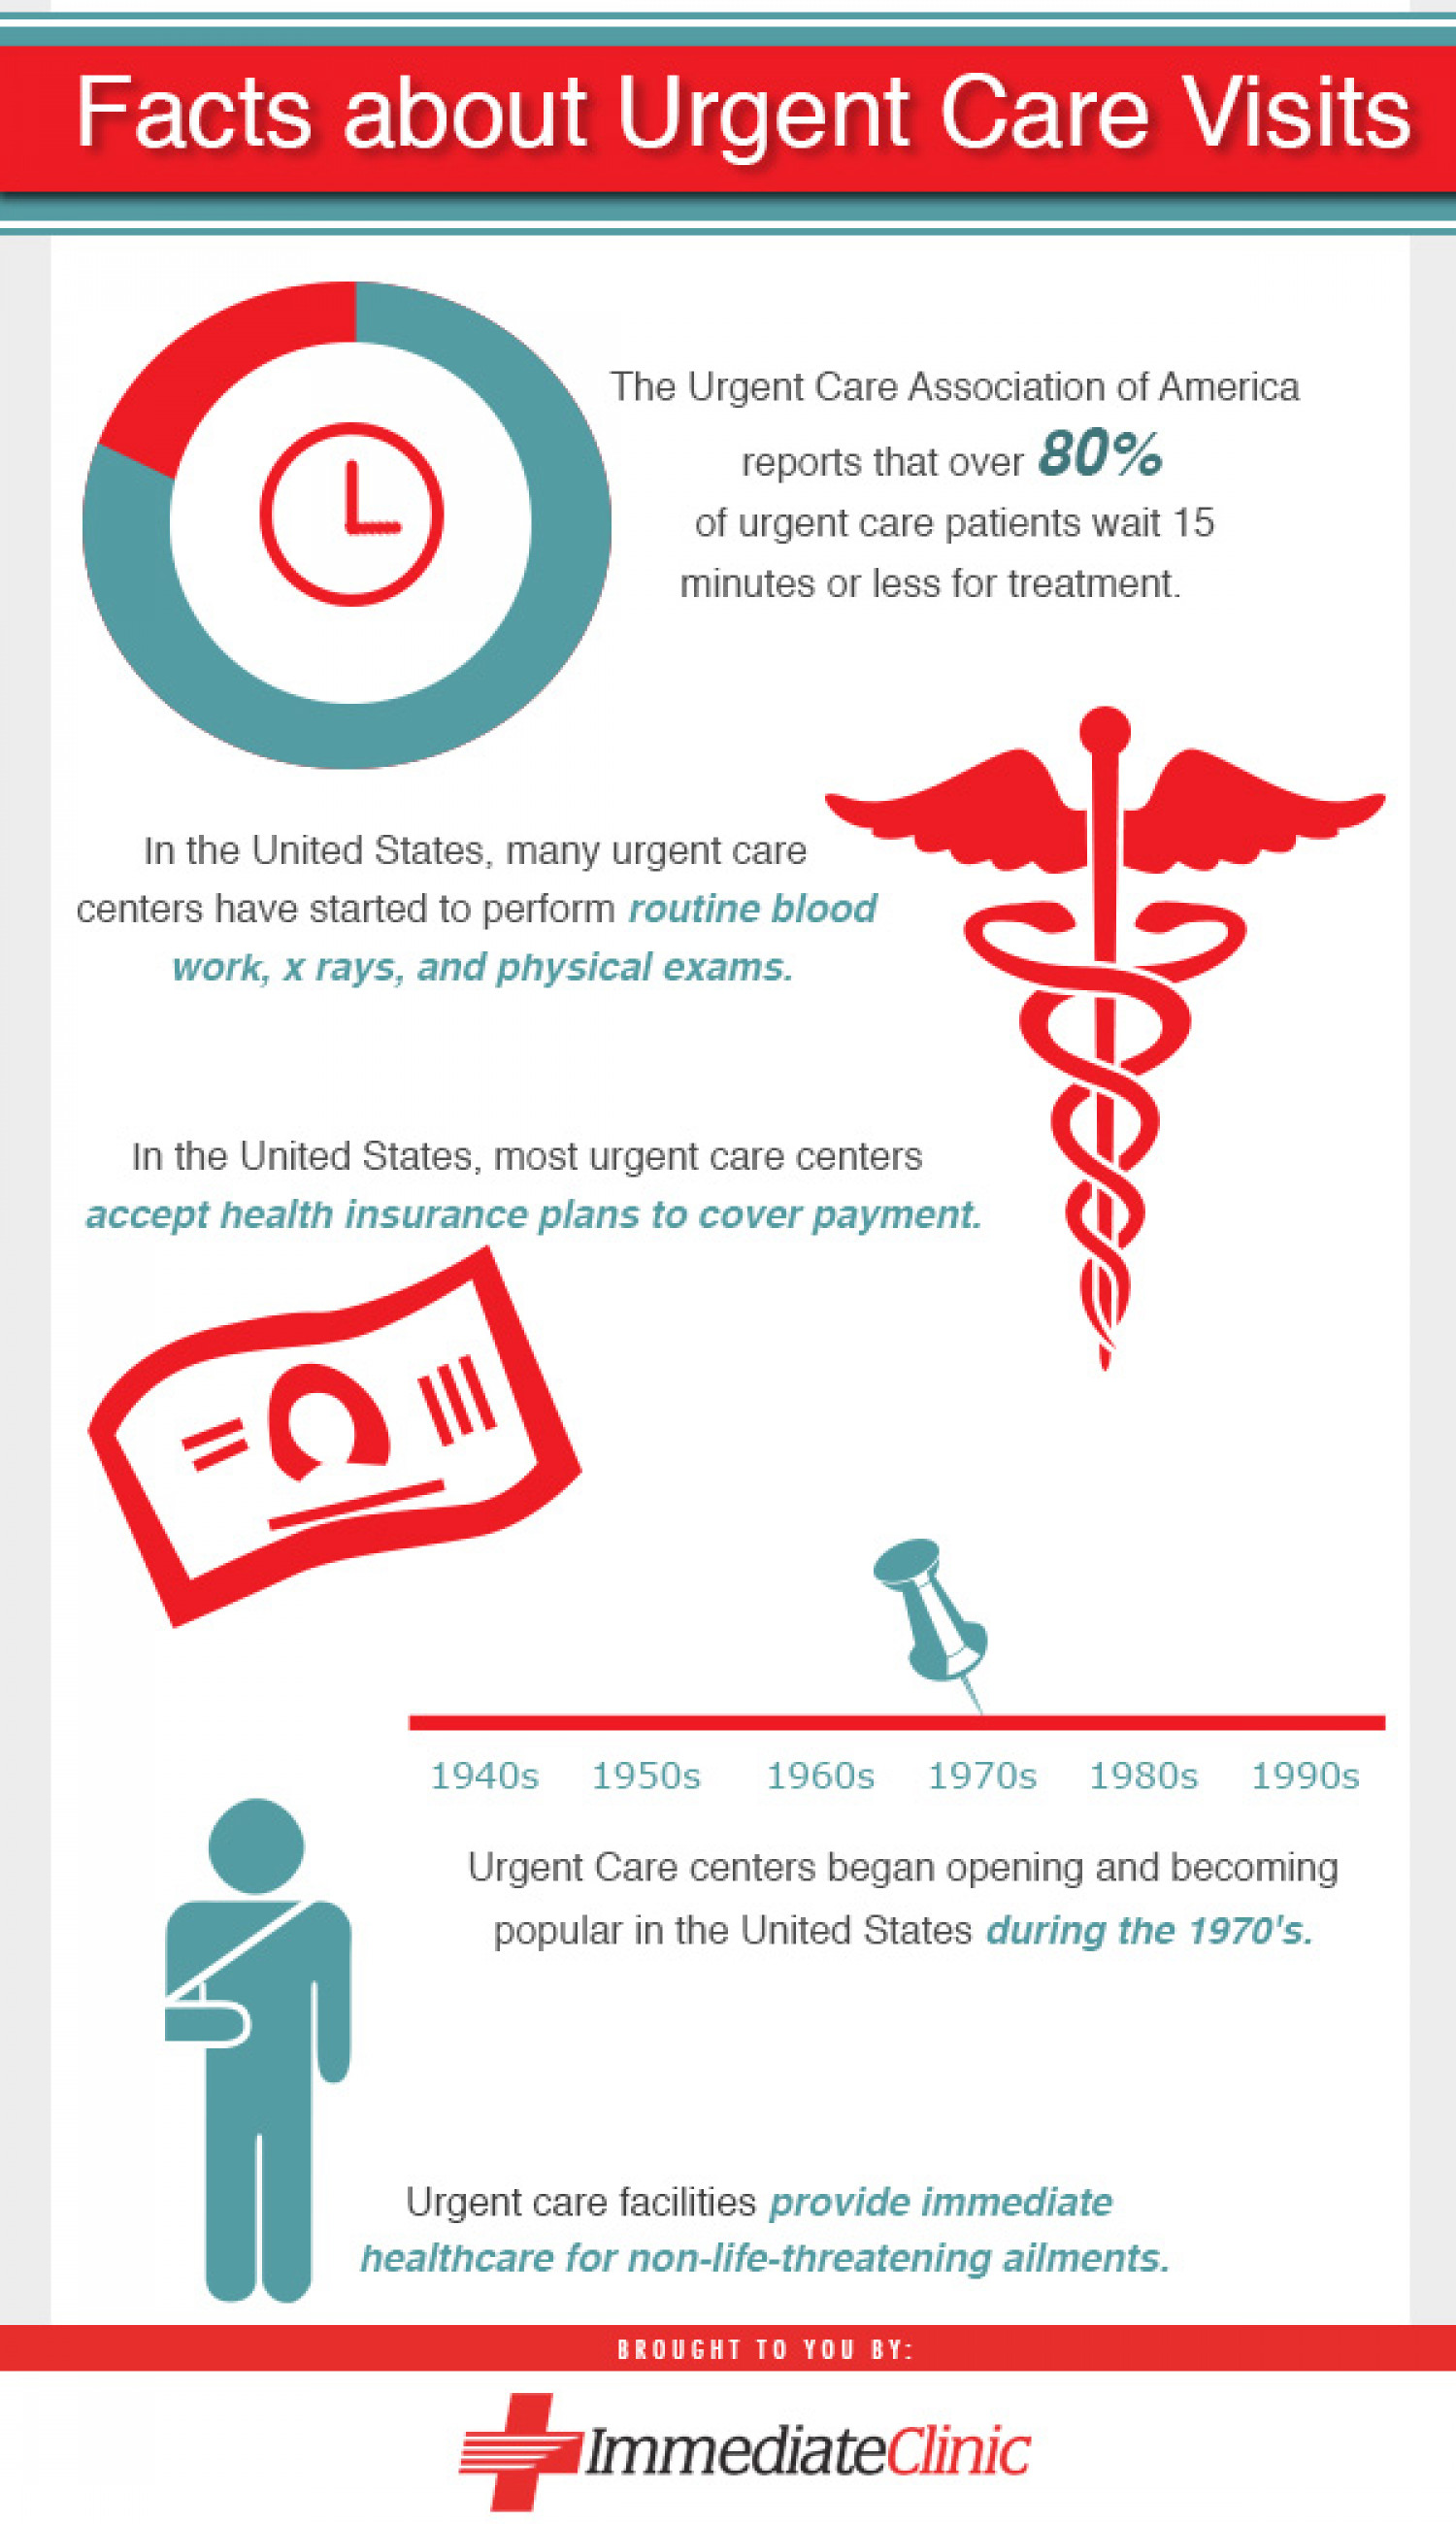 Facts about Urgent Care Visits Infographic